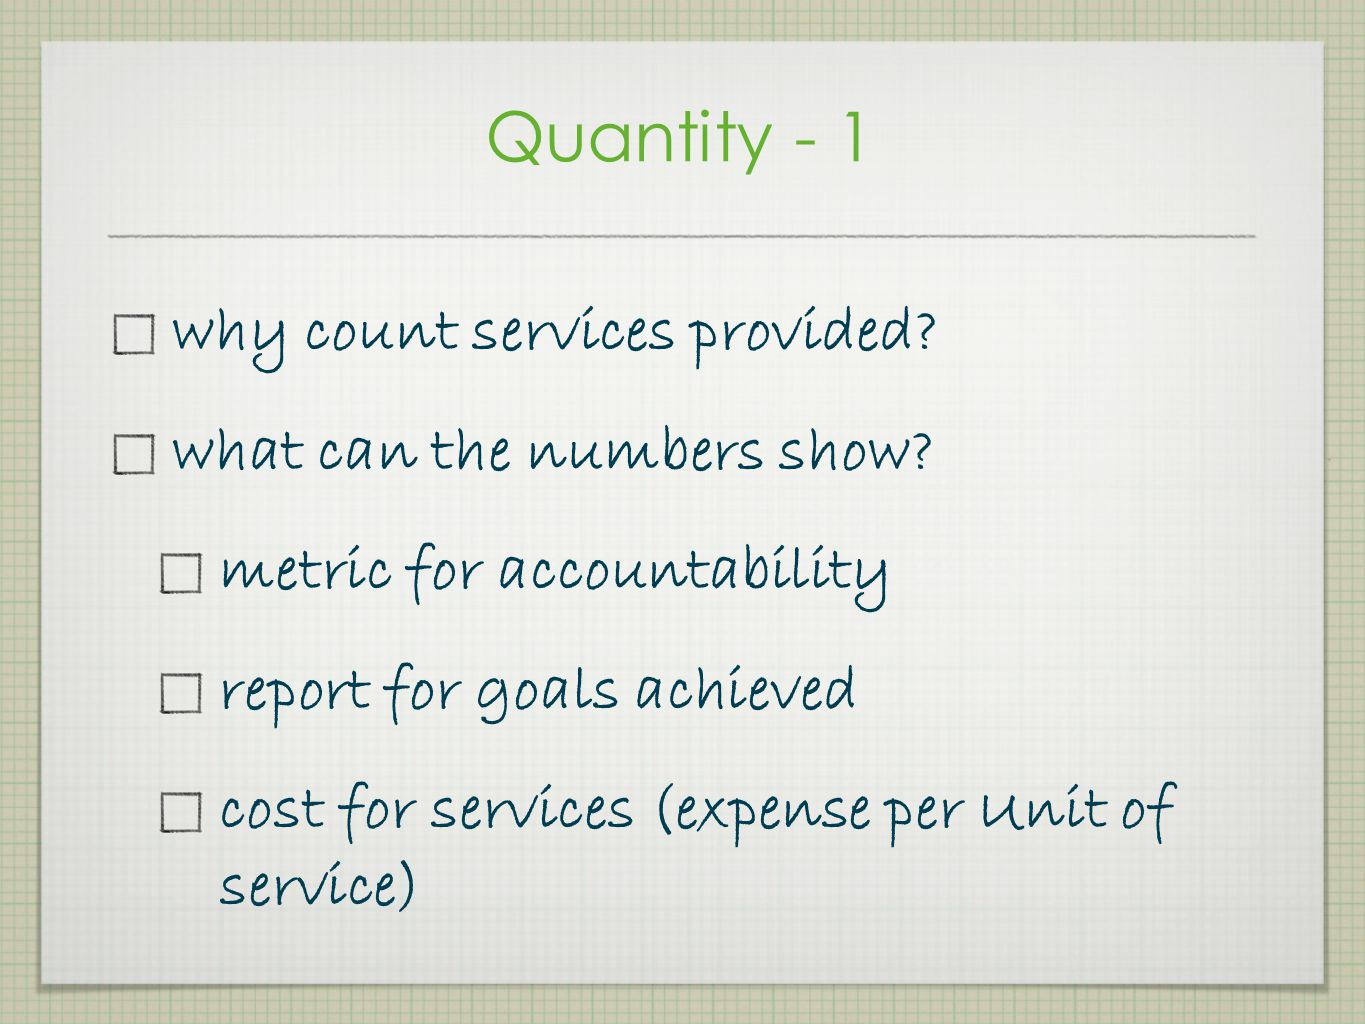 Quantity - 1 why count services provided.what can the numbers show.